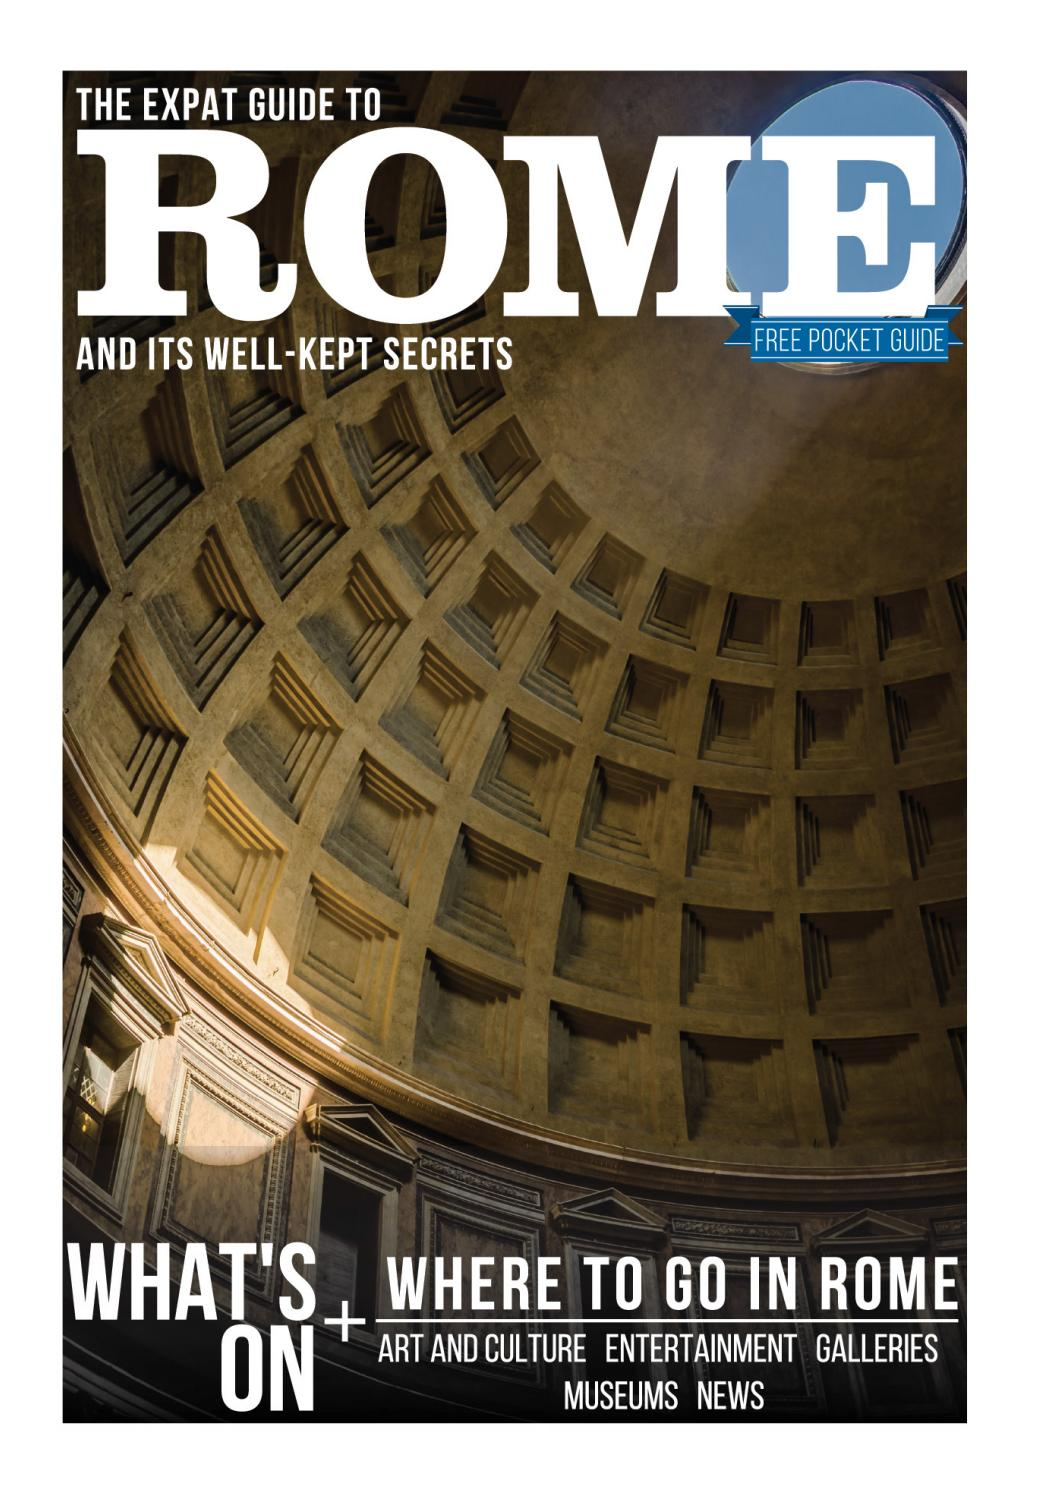 The Expat Guide to Rome 2018 by Wanted in Rome - issuu